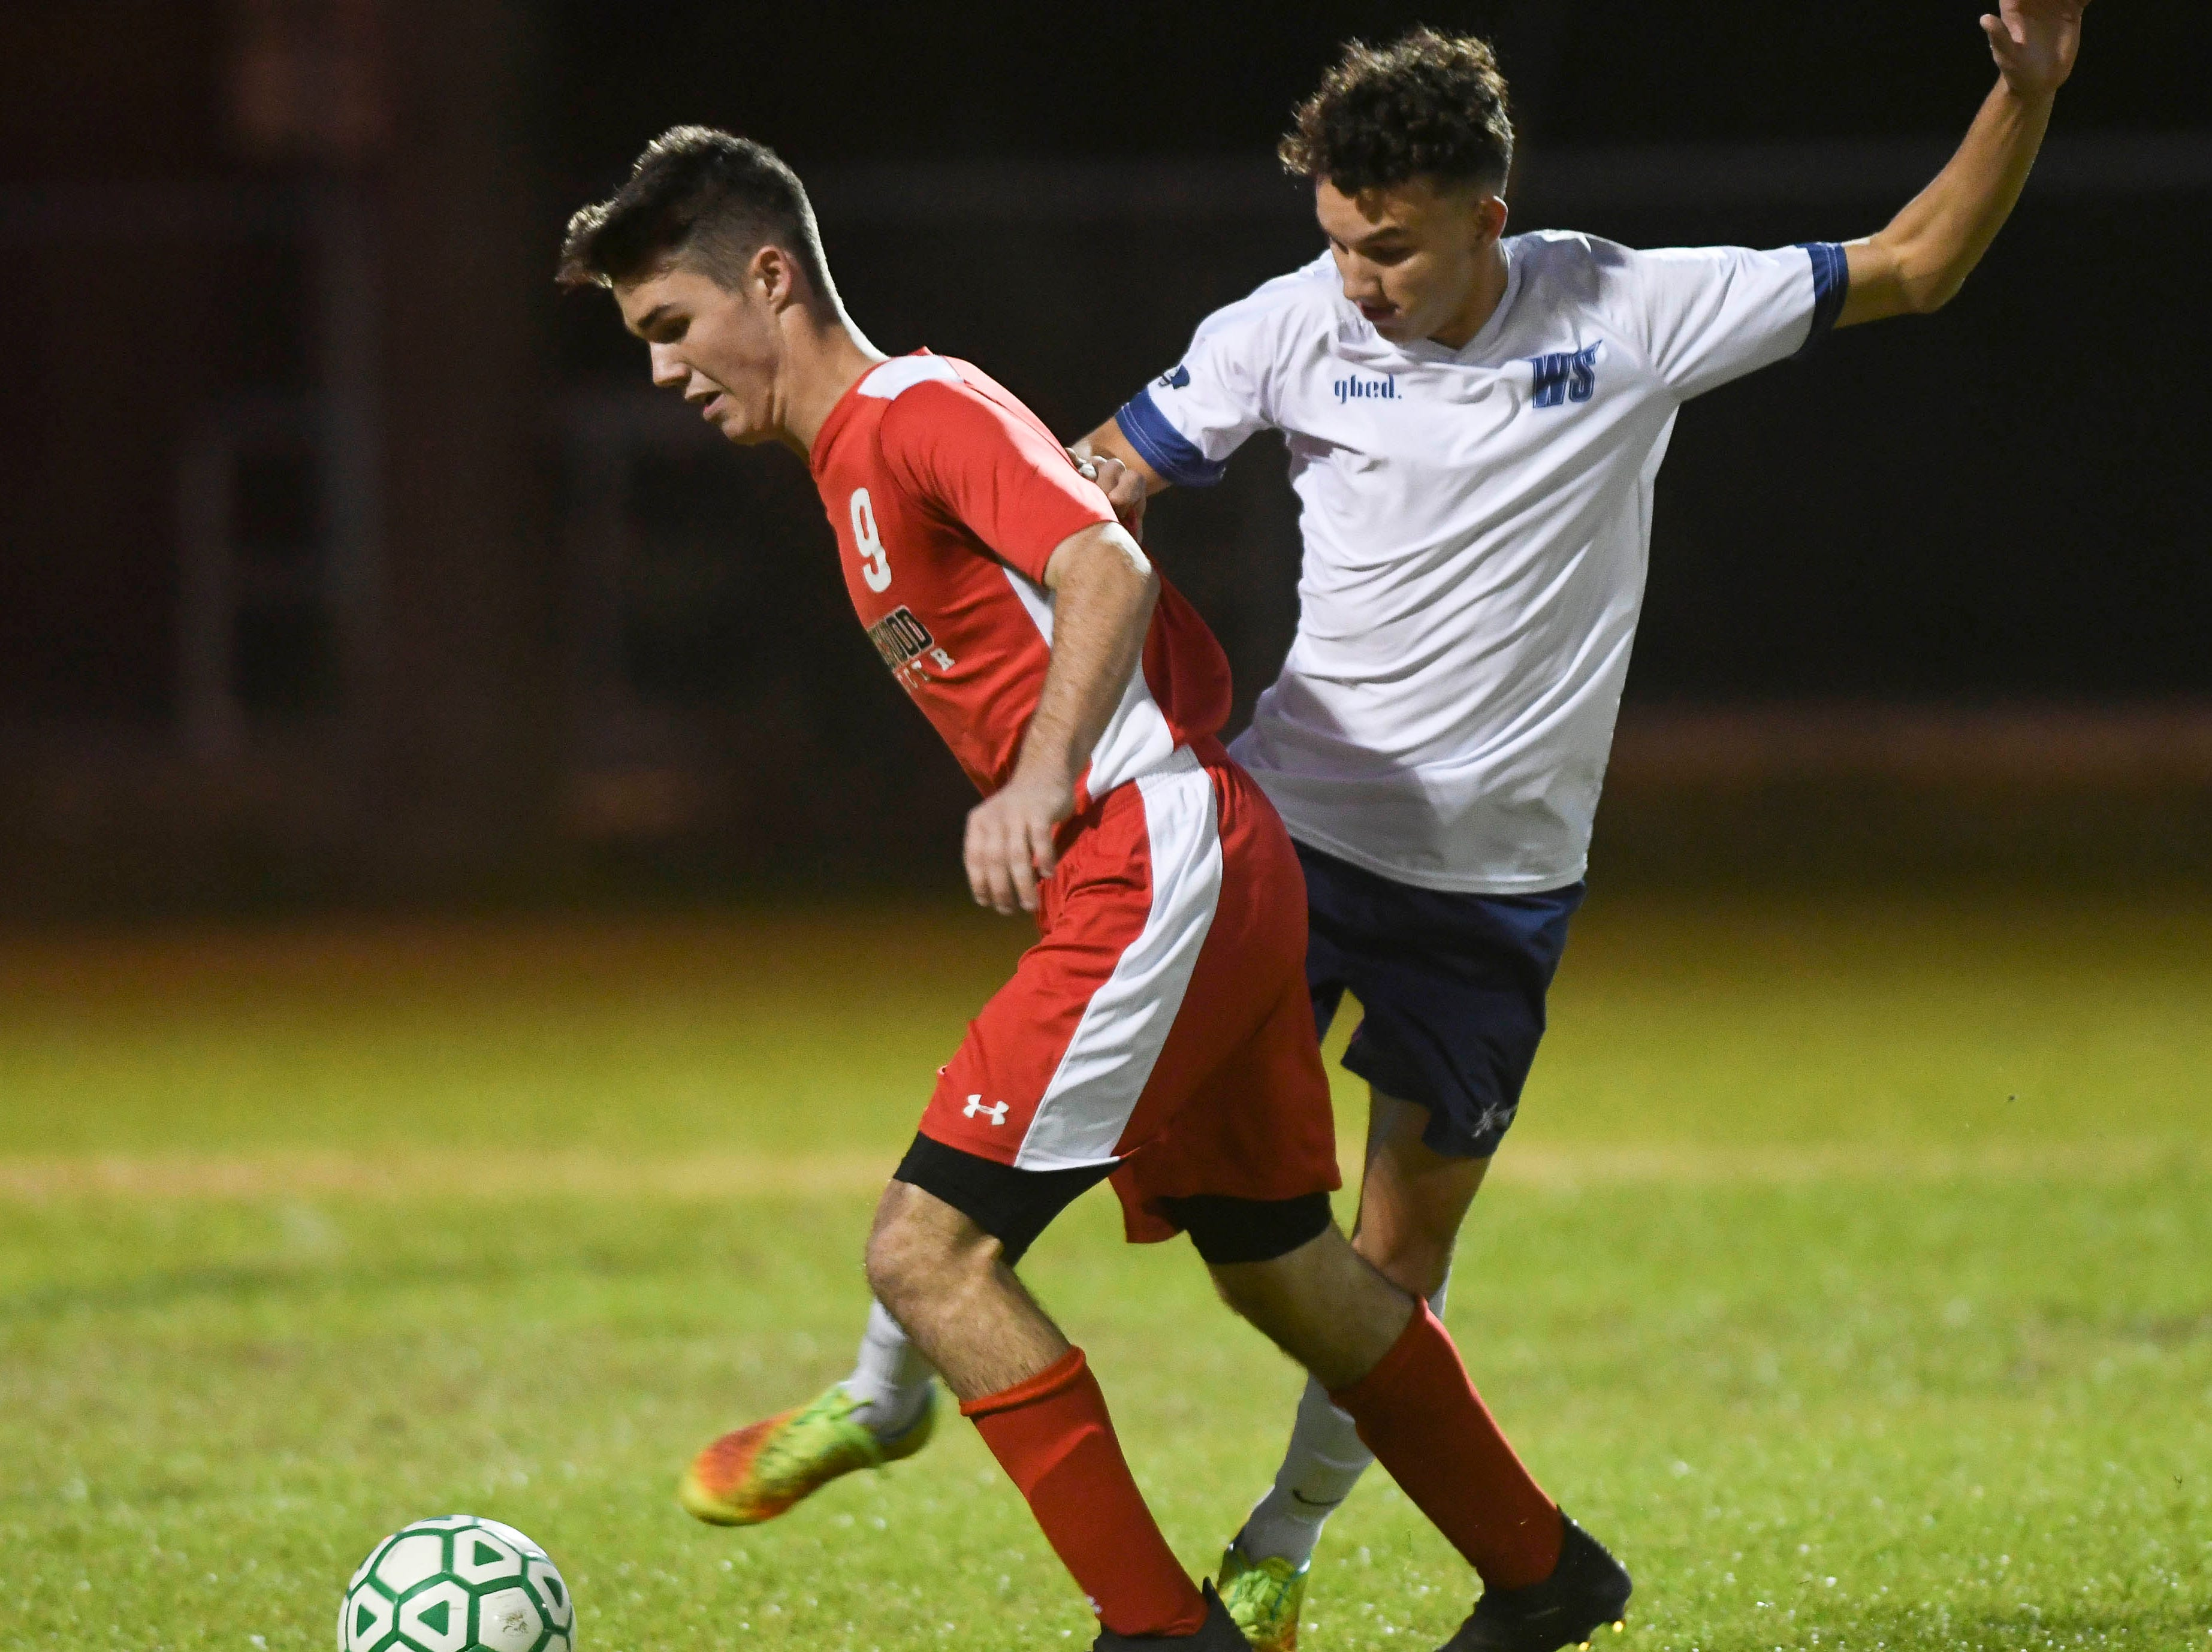 Edgewood's Grant Paparella and Cameron Yeutter of West Shore battle for the ball during Thursday's Cape Coast Conference championship game.